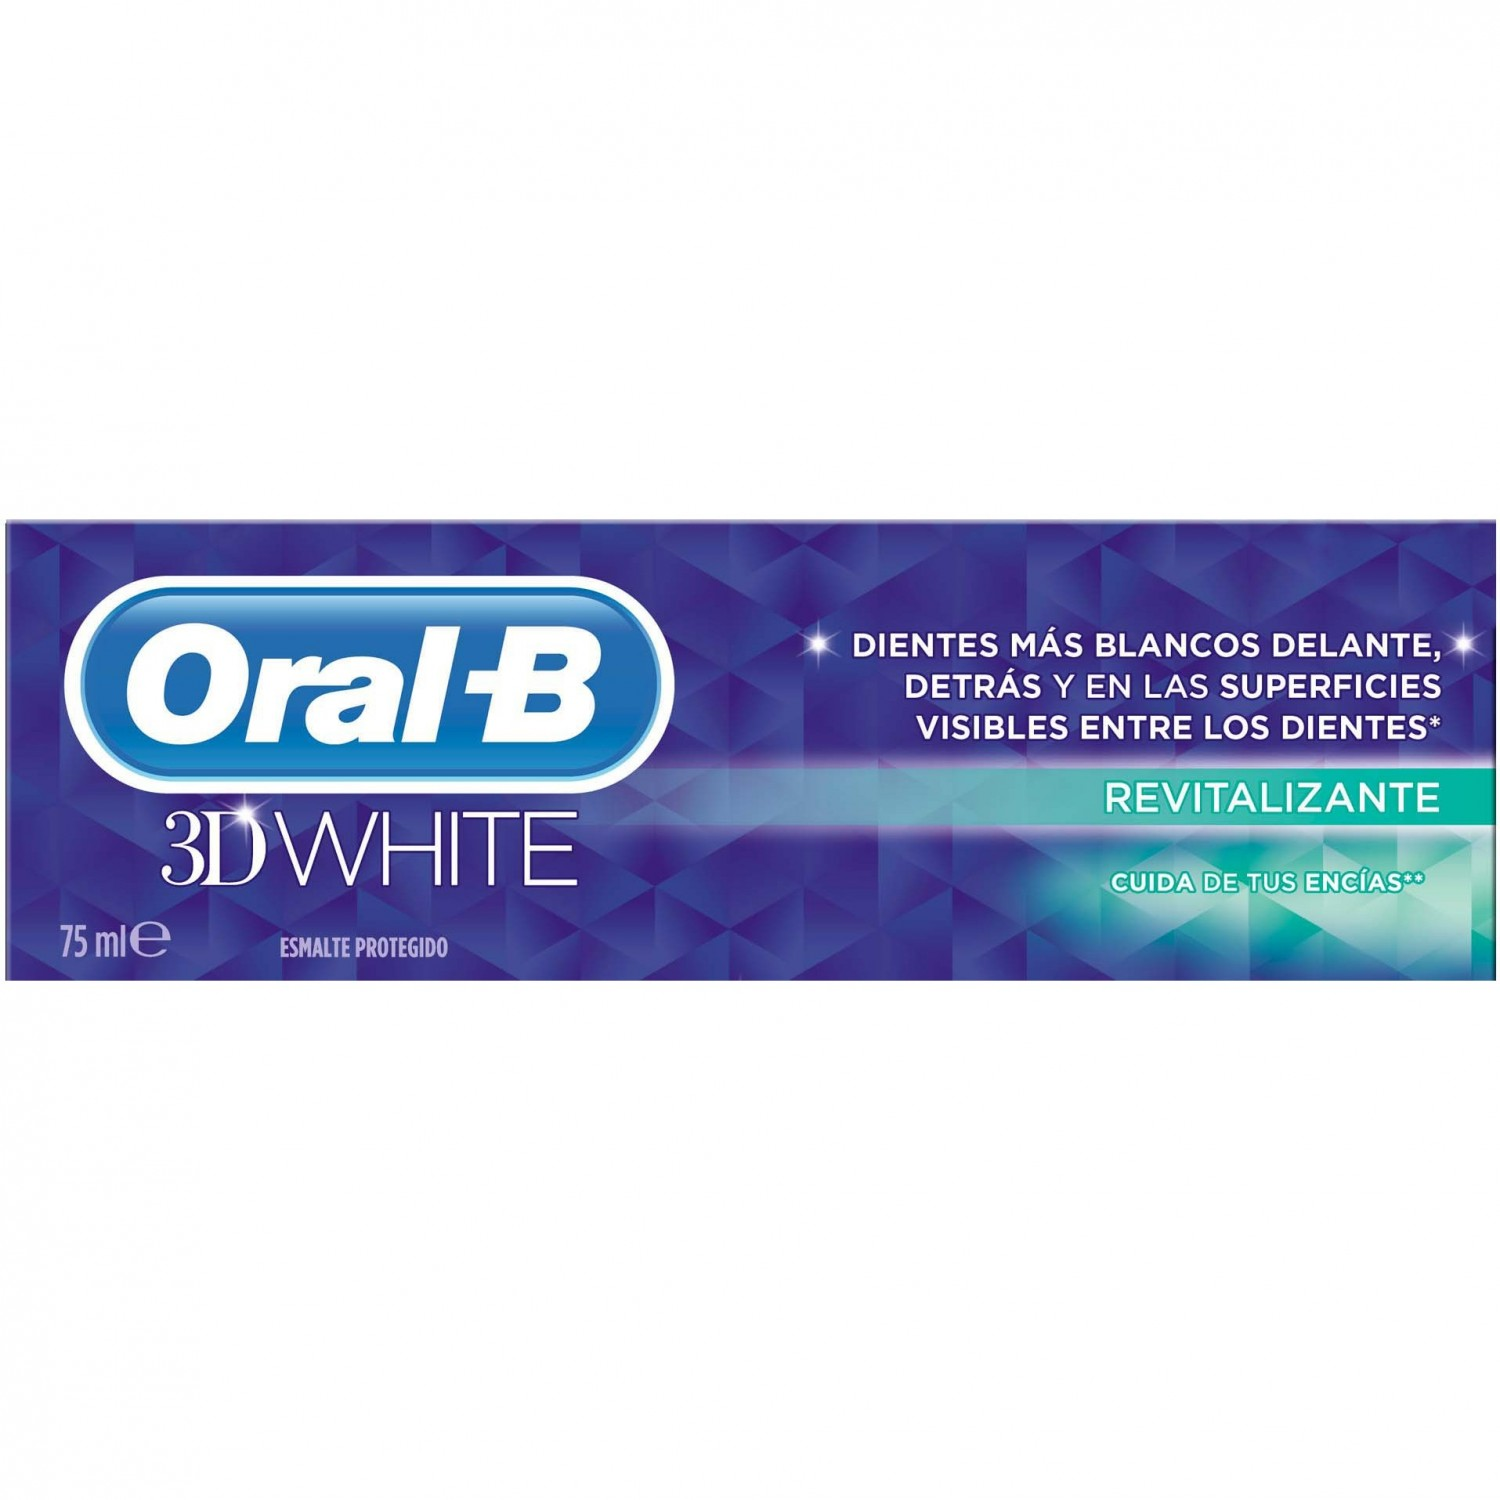 Oral B dentifrico 3d white revitalizante de 75ml.